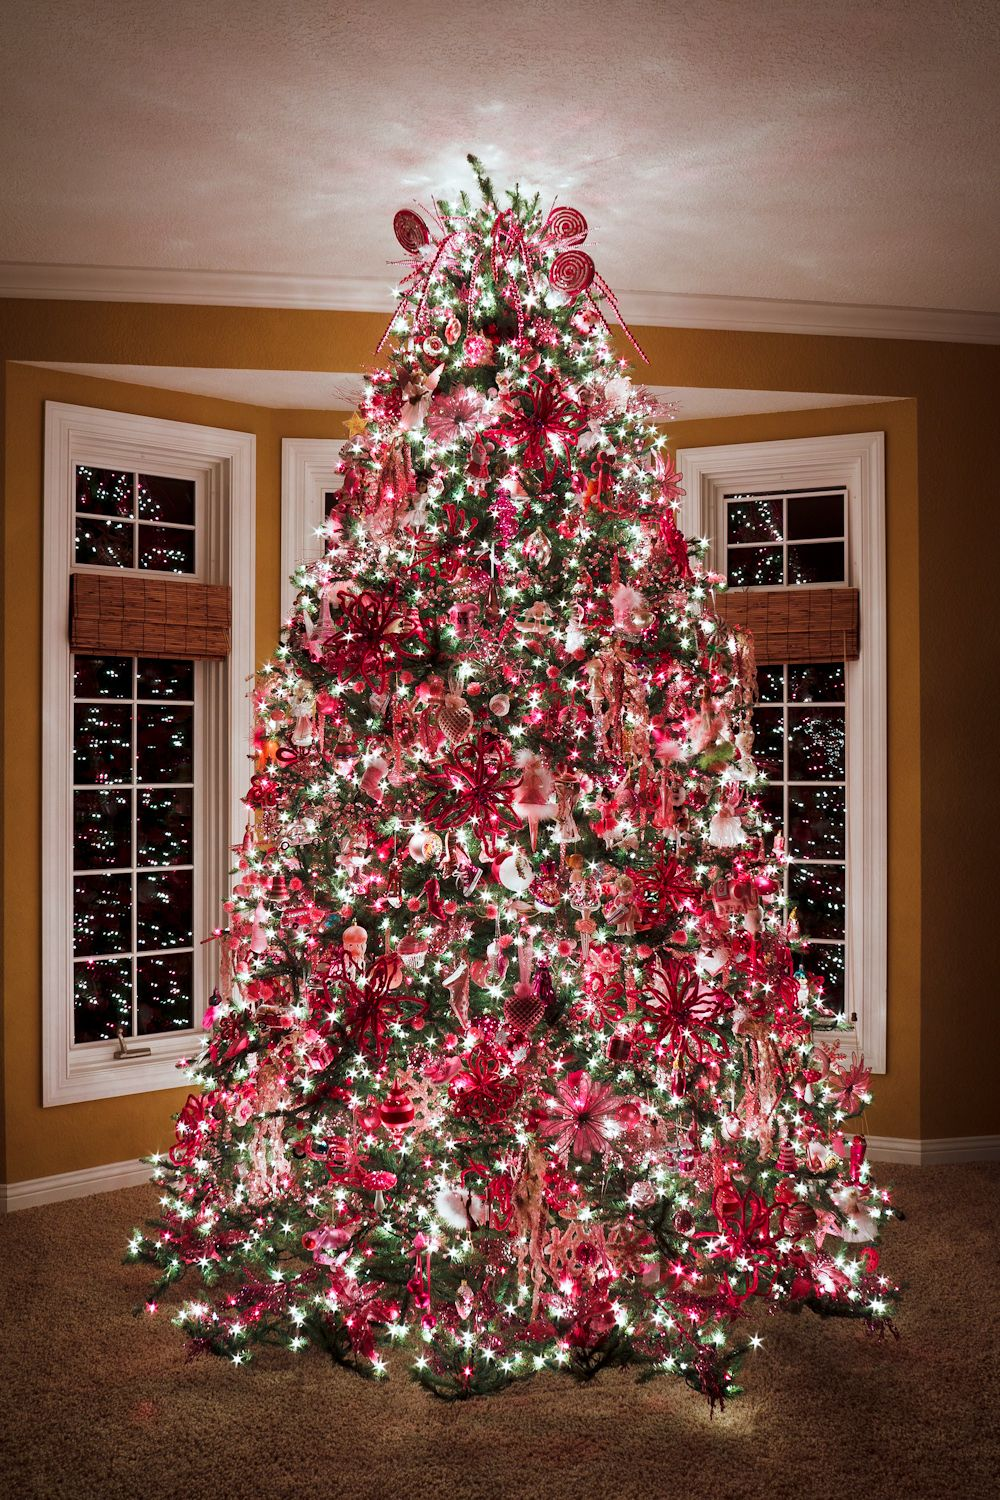 have a merry pink christmas christmas trees pinterest. Black Bedroom Furniture Sets. Home Design Ideas